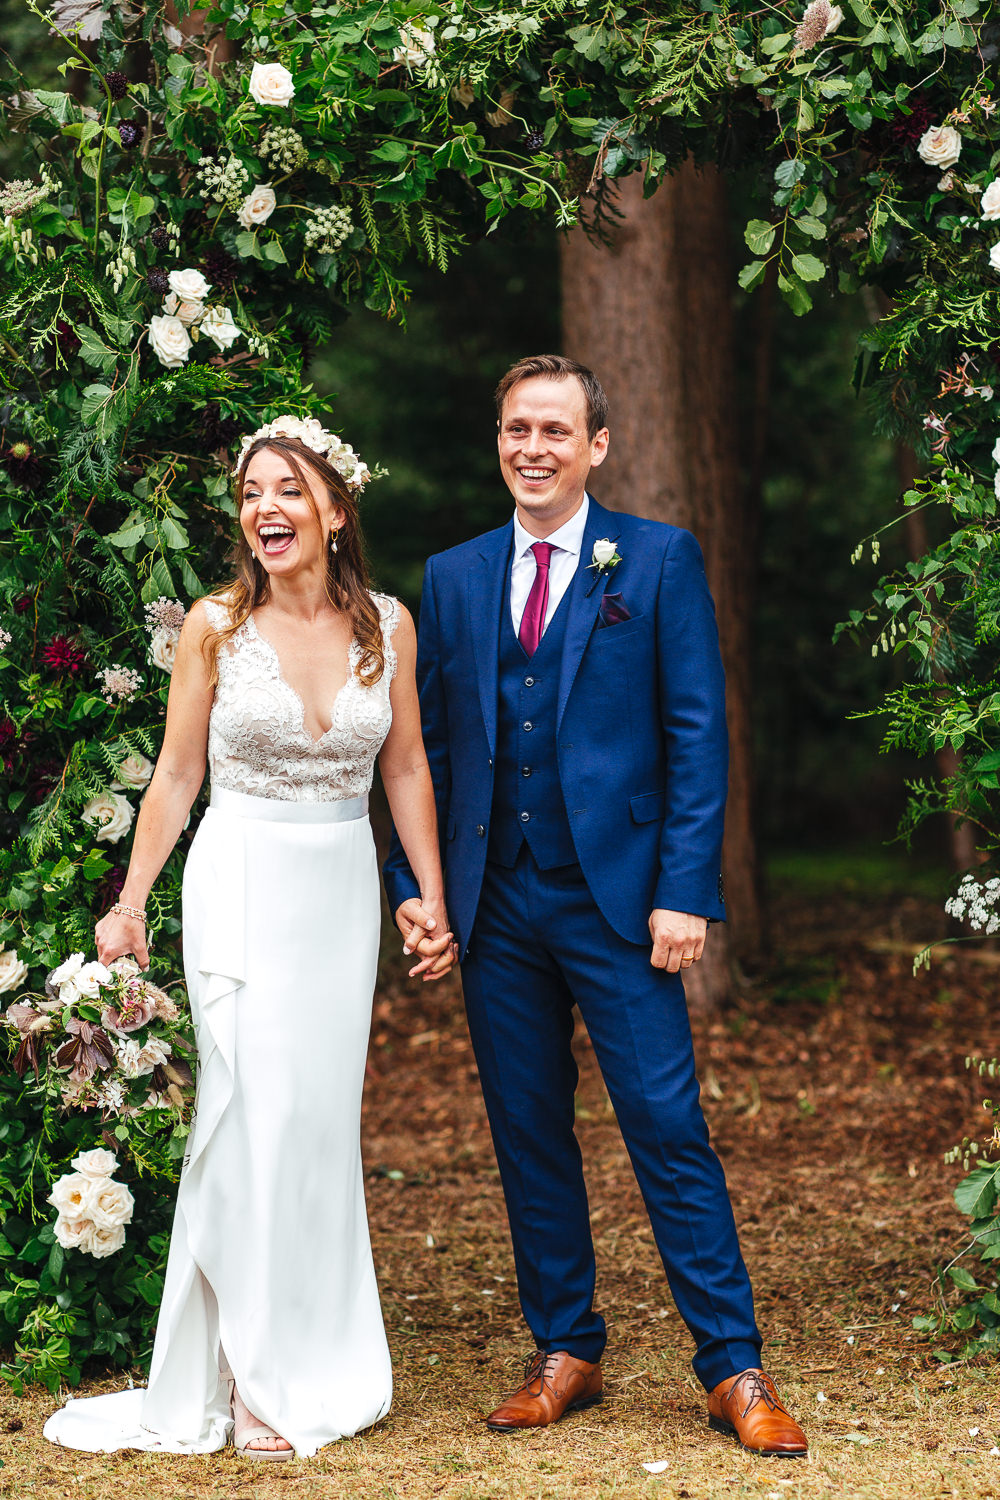 Bride Bridal Dress Gown Suzanne Neville Slinky Lace Plunge Neck Festival Party Wedding Kirsty Mackenzie Photography